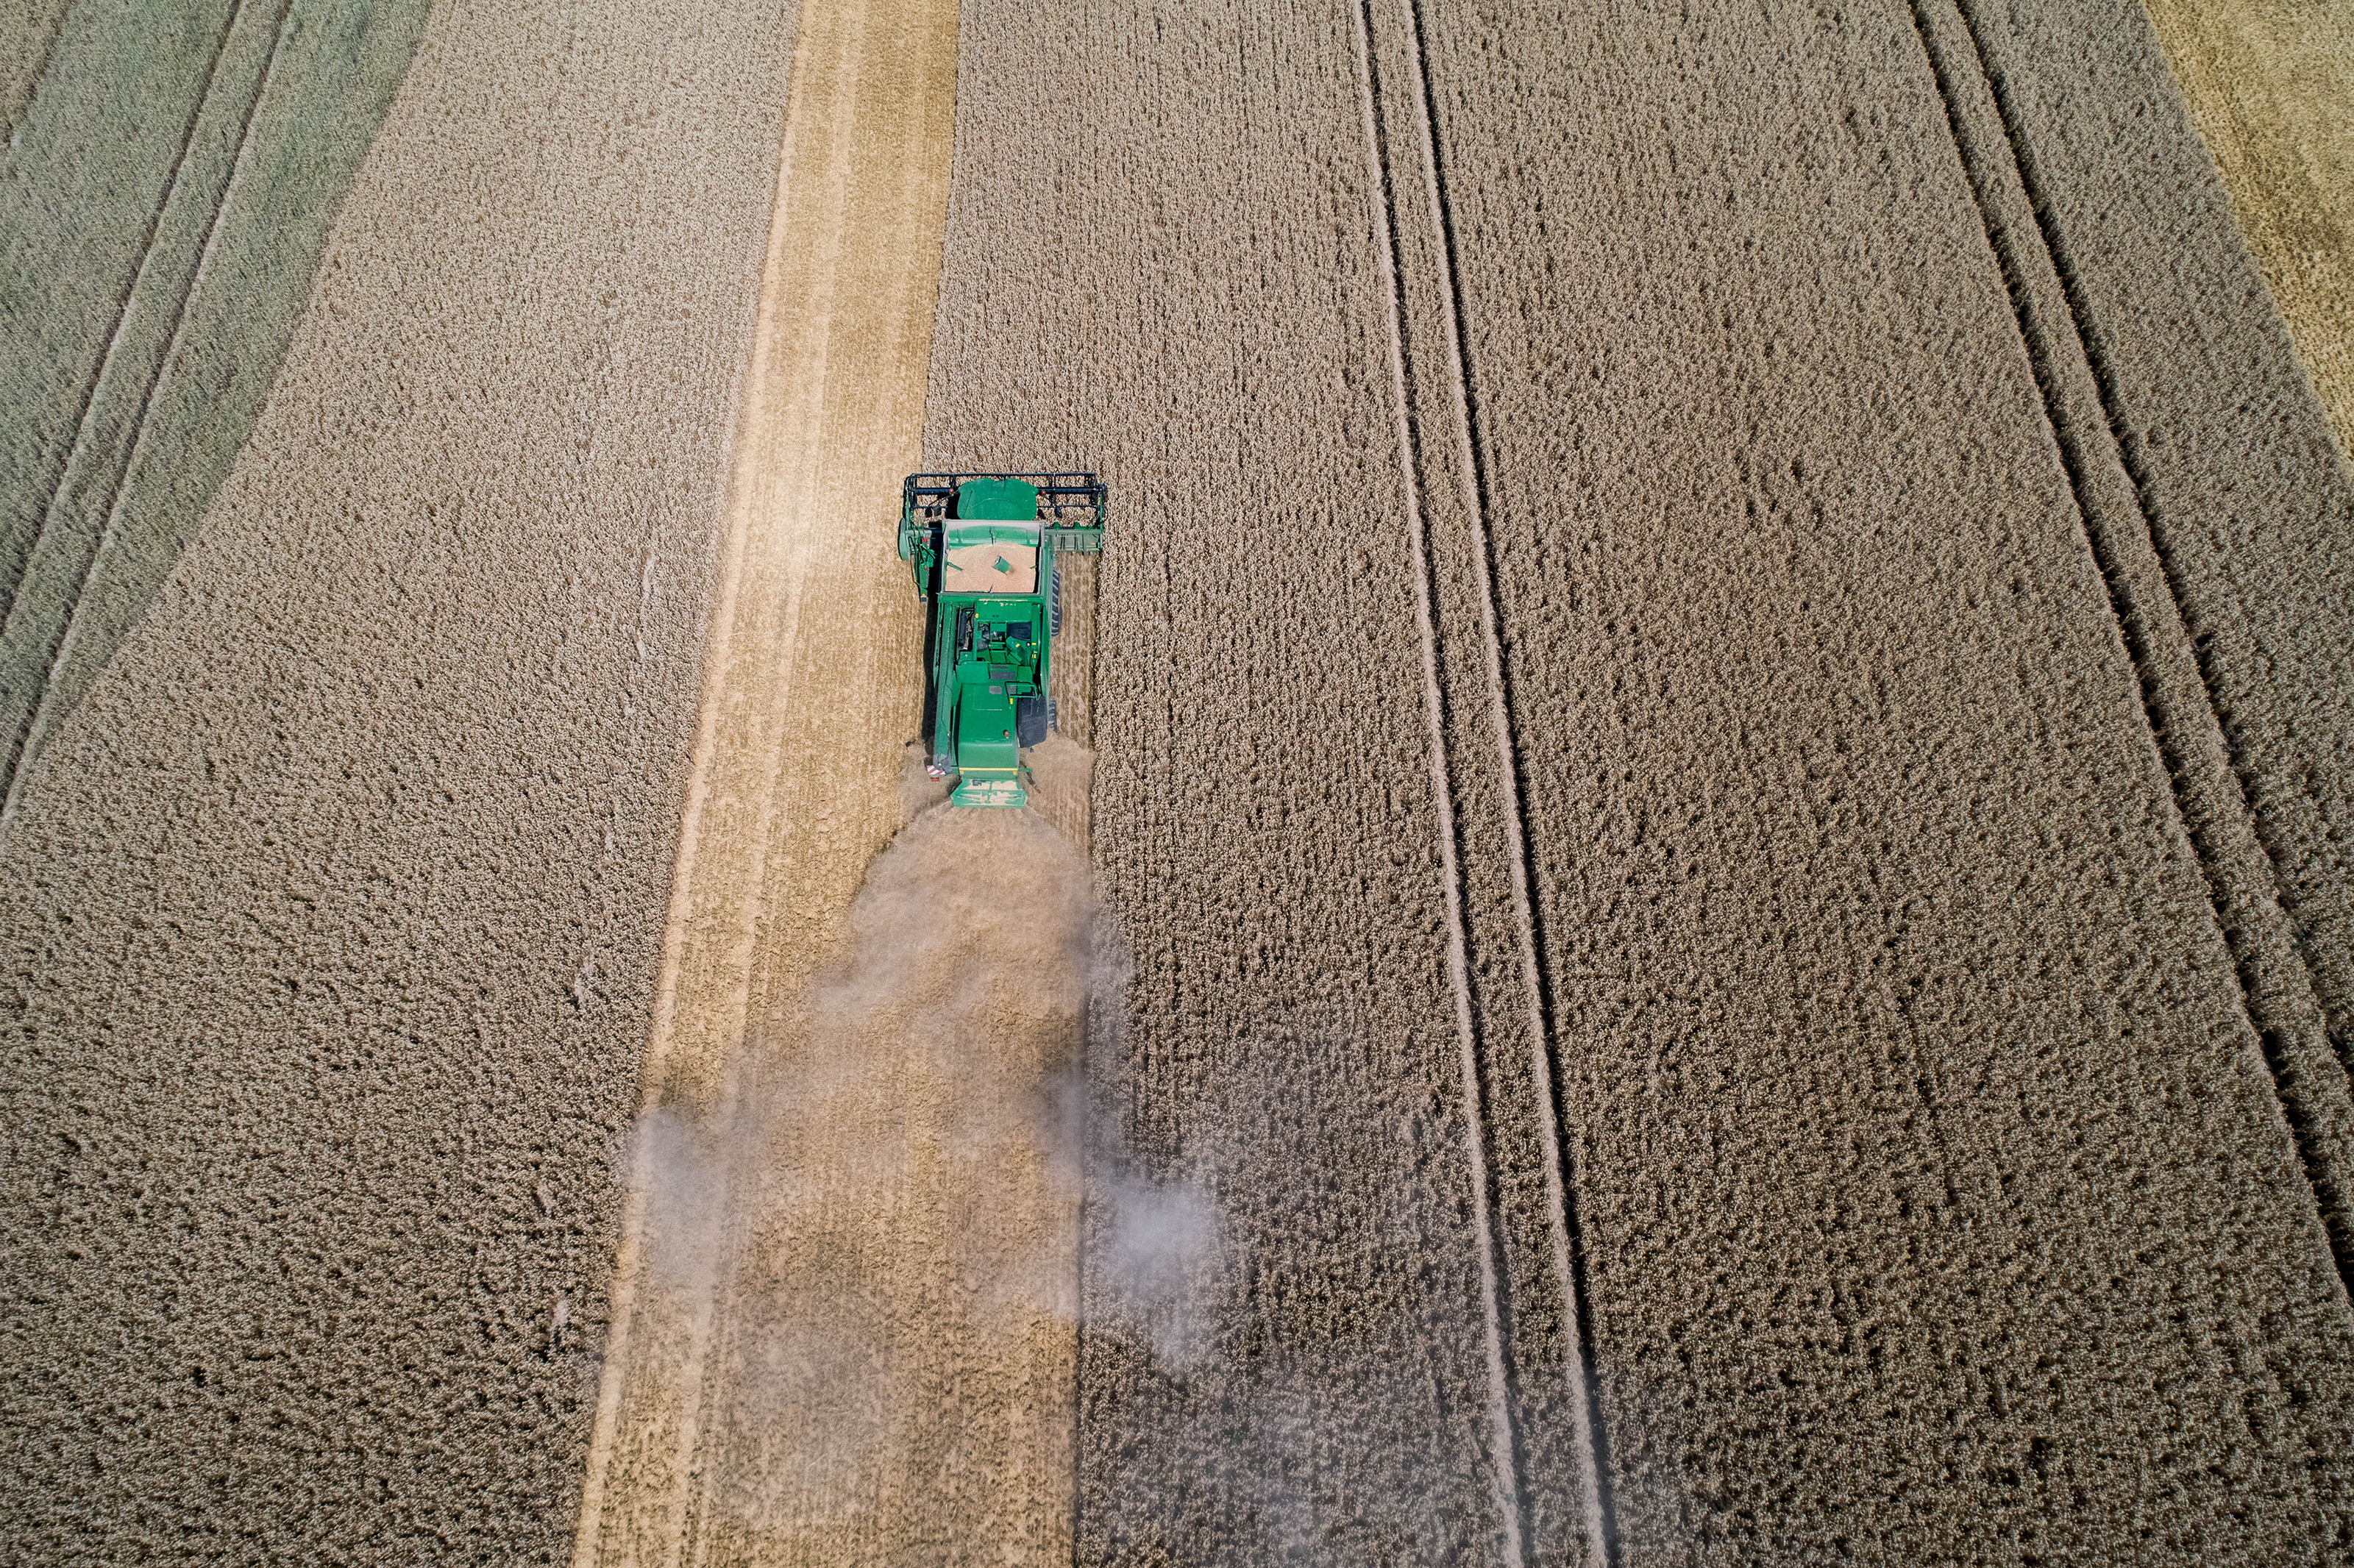 Andernach, Germany 18.07.2018 -Aerial view on the combine harvester working on the large wheat field in Germany